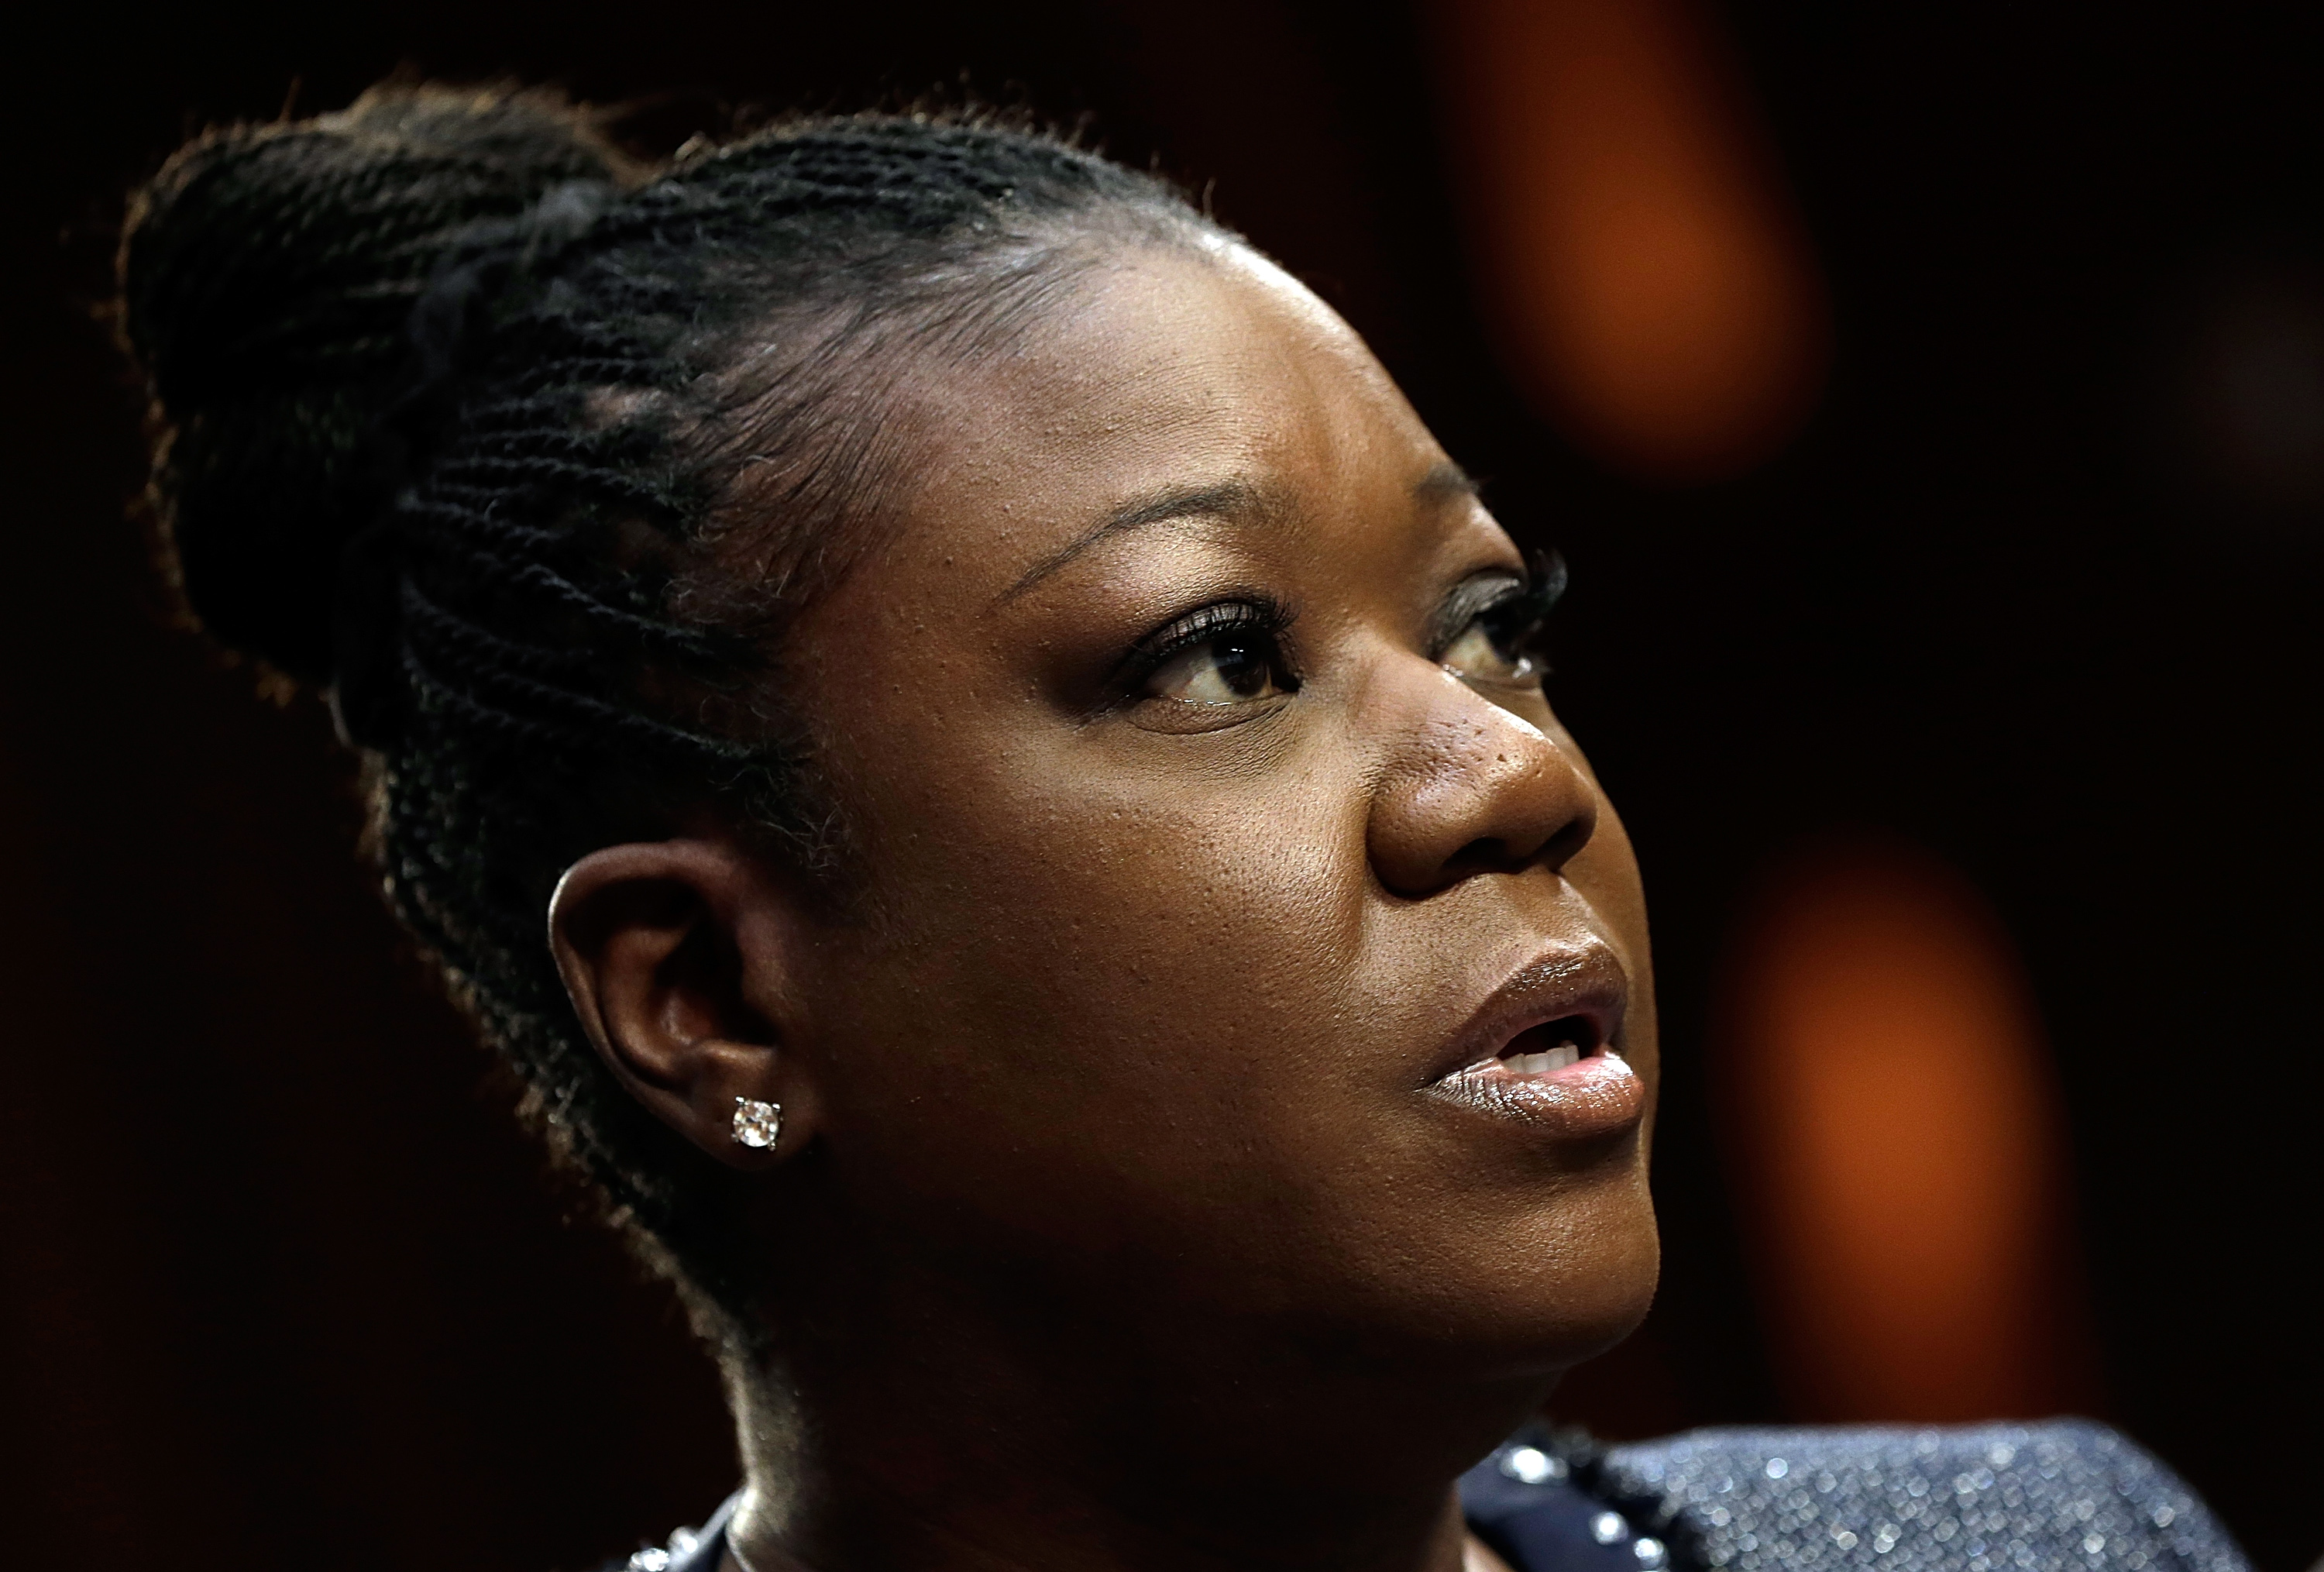 Sybrina Fulton of Miami, Fla., mother of Trayvon Martin, testifies during a Senate Judiciary Committee hearing on  Stand Your Ground  laws October 29, 2013 in Washington DC.